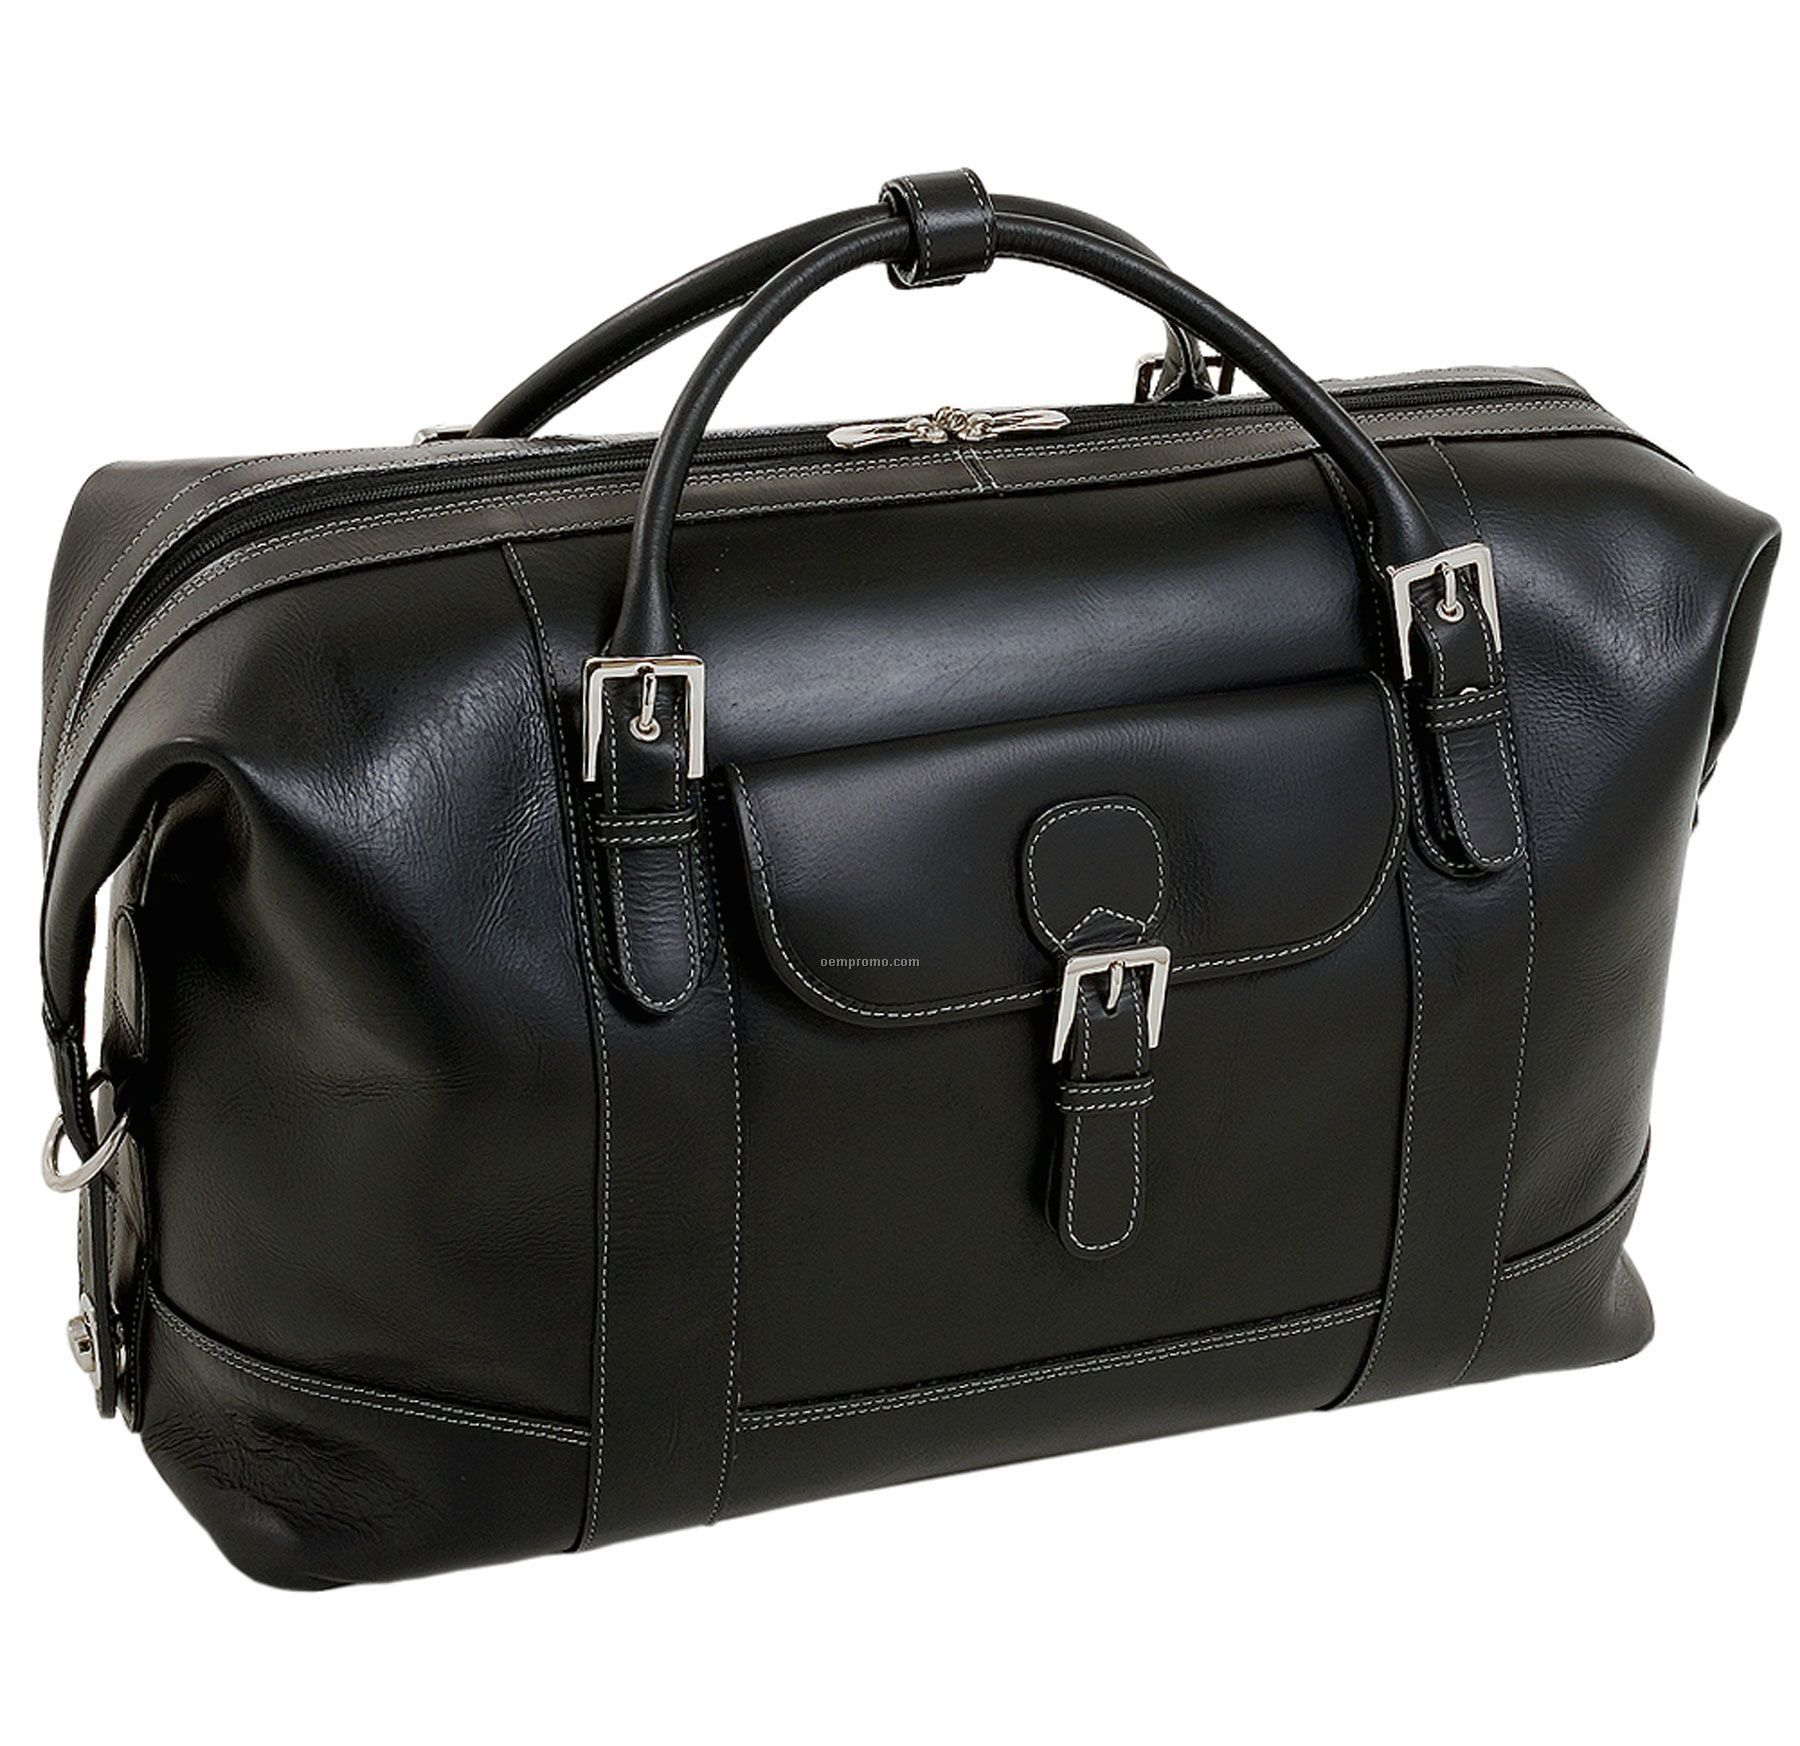 Amore Leather Duffel Bag - Black